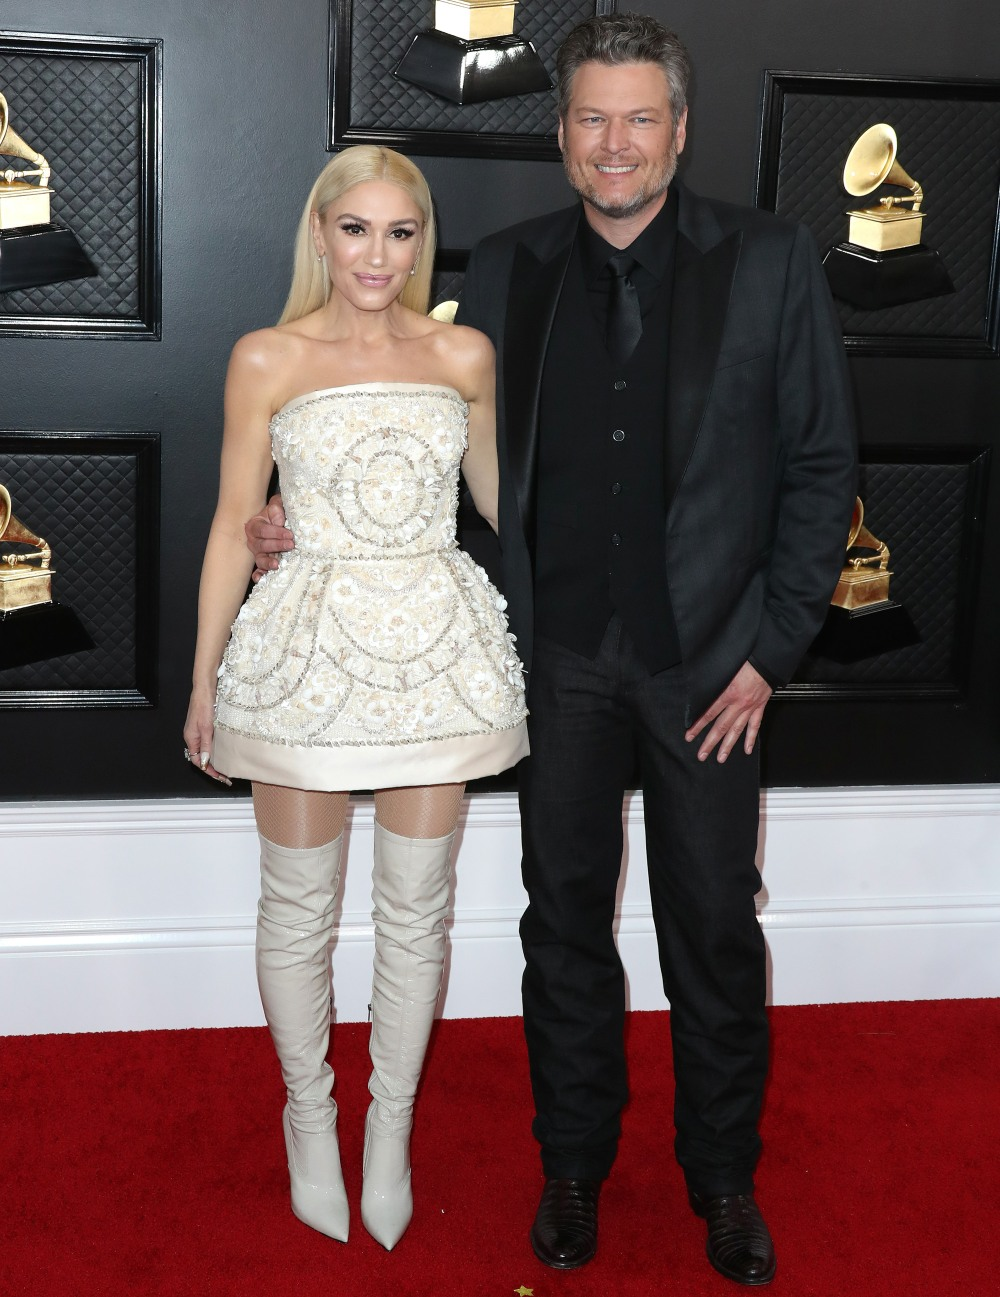 Gwen Stefani and Blake Shelton arrive at the 62nd Annual GRAMMY Awards held at Staples Center on January 26, 2020 in Los Angeles, California, United States.